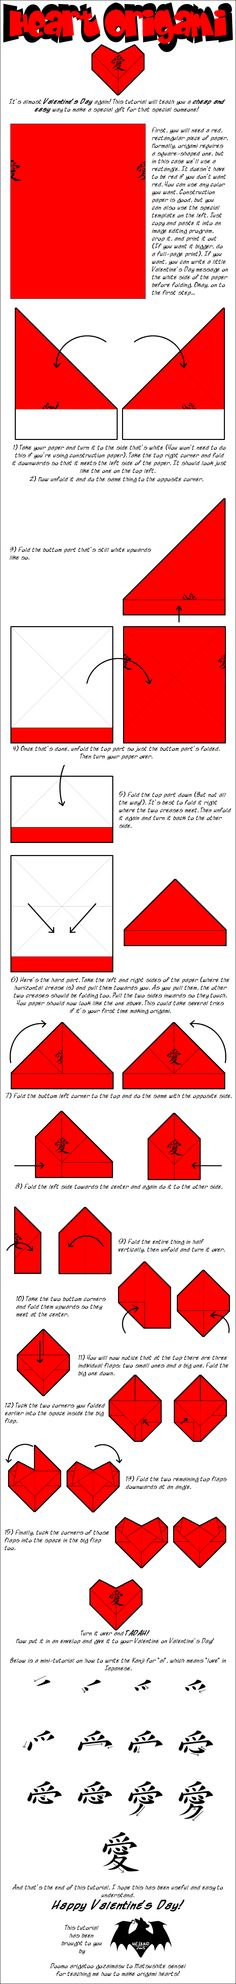 How to make an Origami Heart out of RECTANGULAR paper